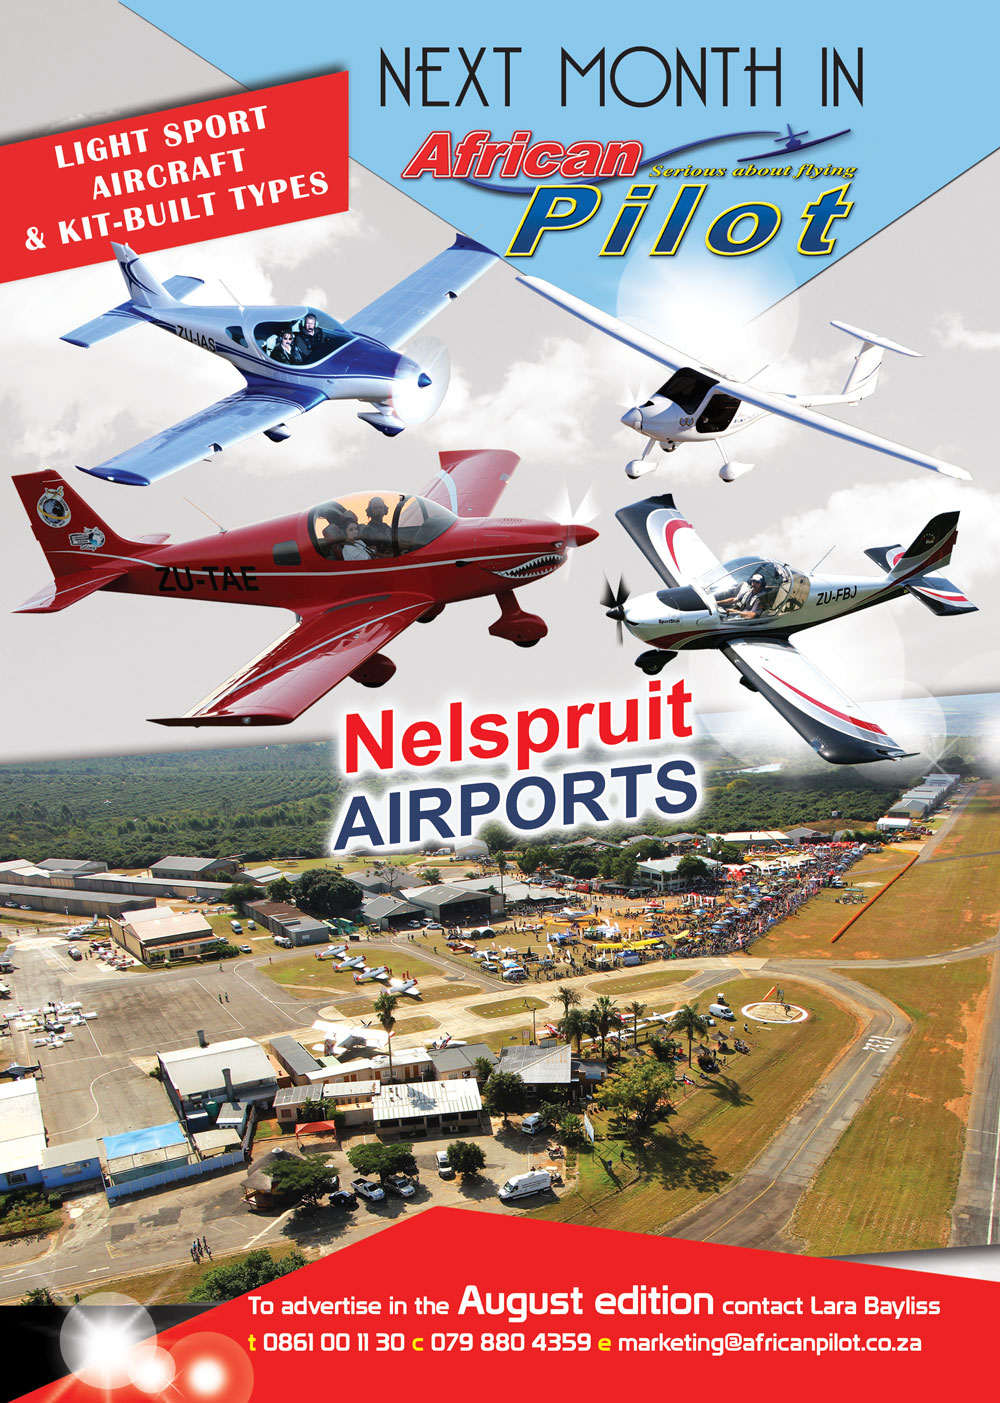 African Pilot's August 2018 edition